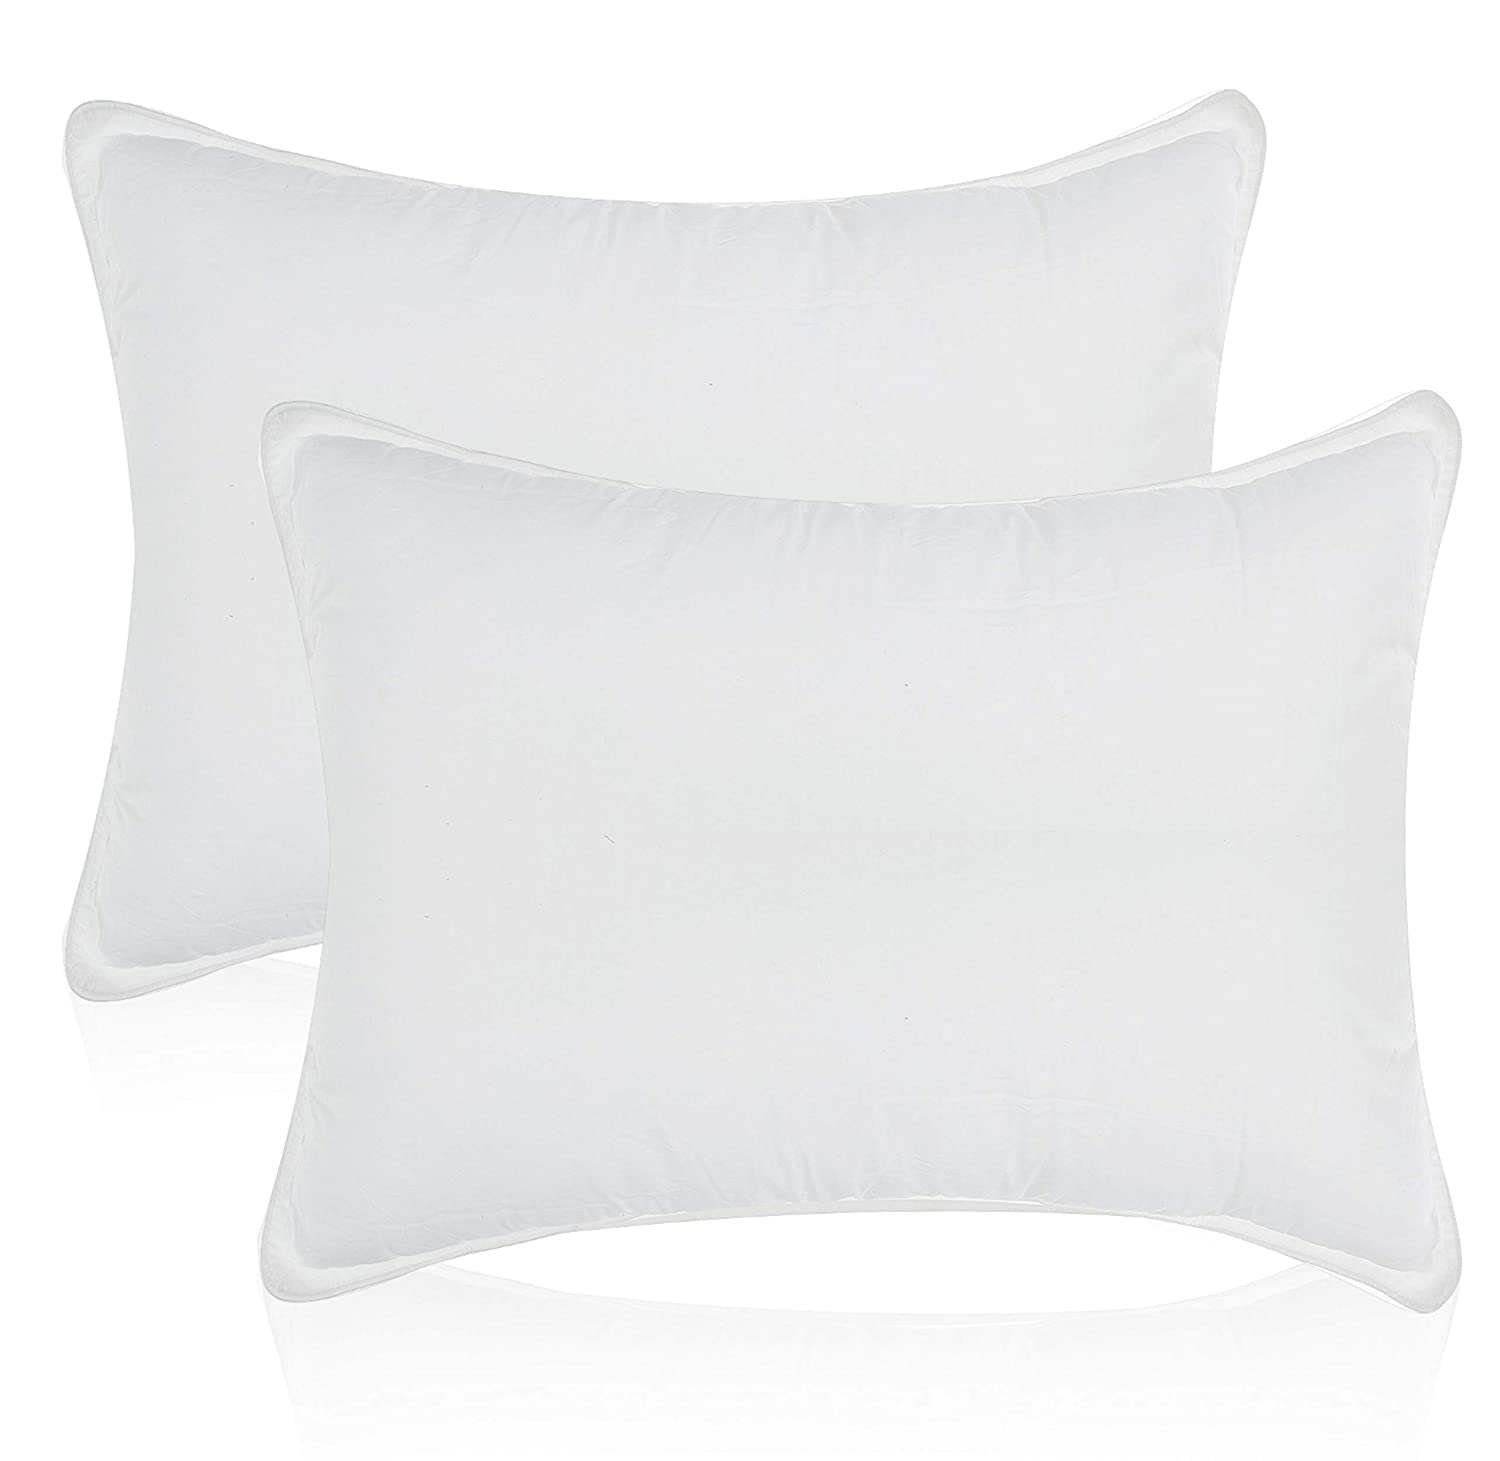 White Classic Bed Pillows for Sleeping | Down Alternative Luxury Hotel Pillow | 2 Pack | Queen Size